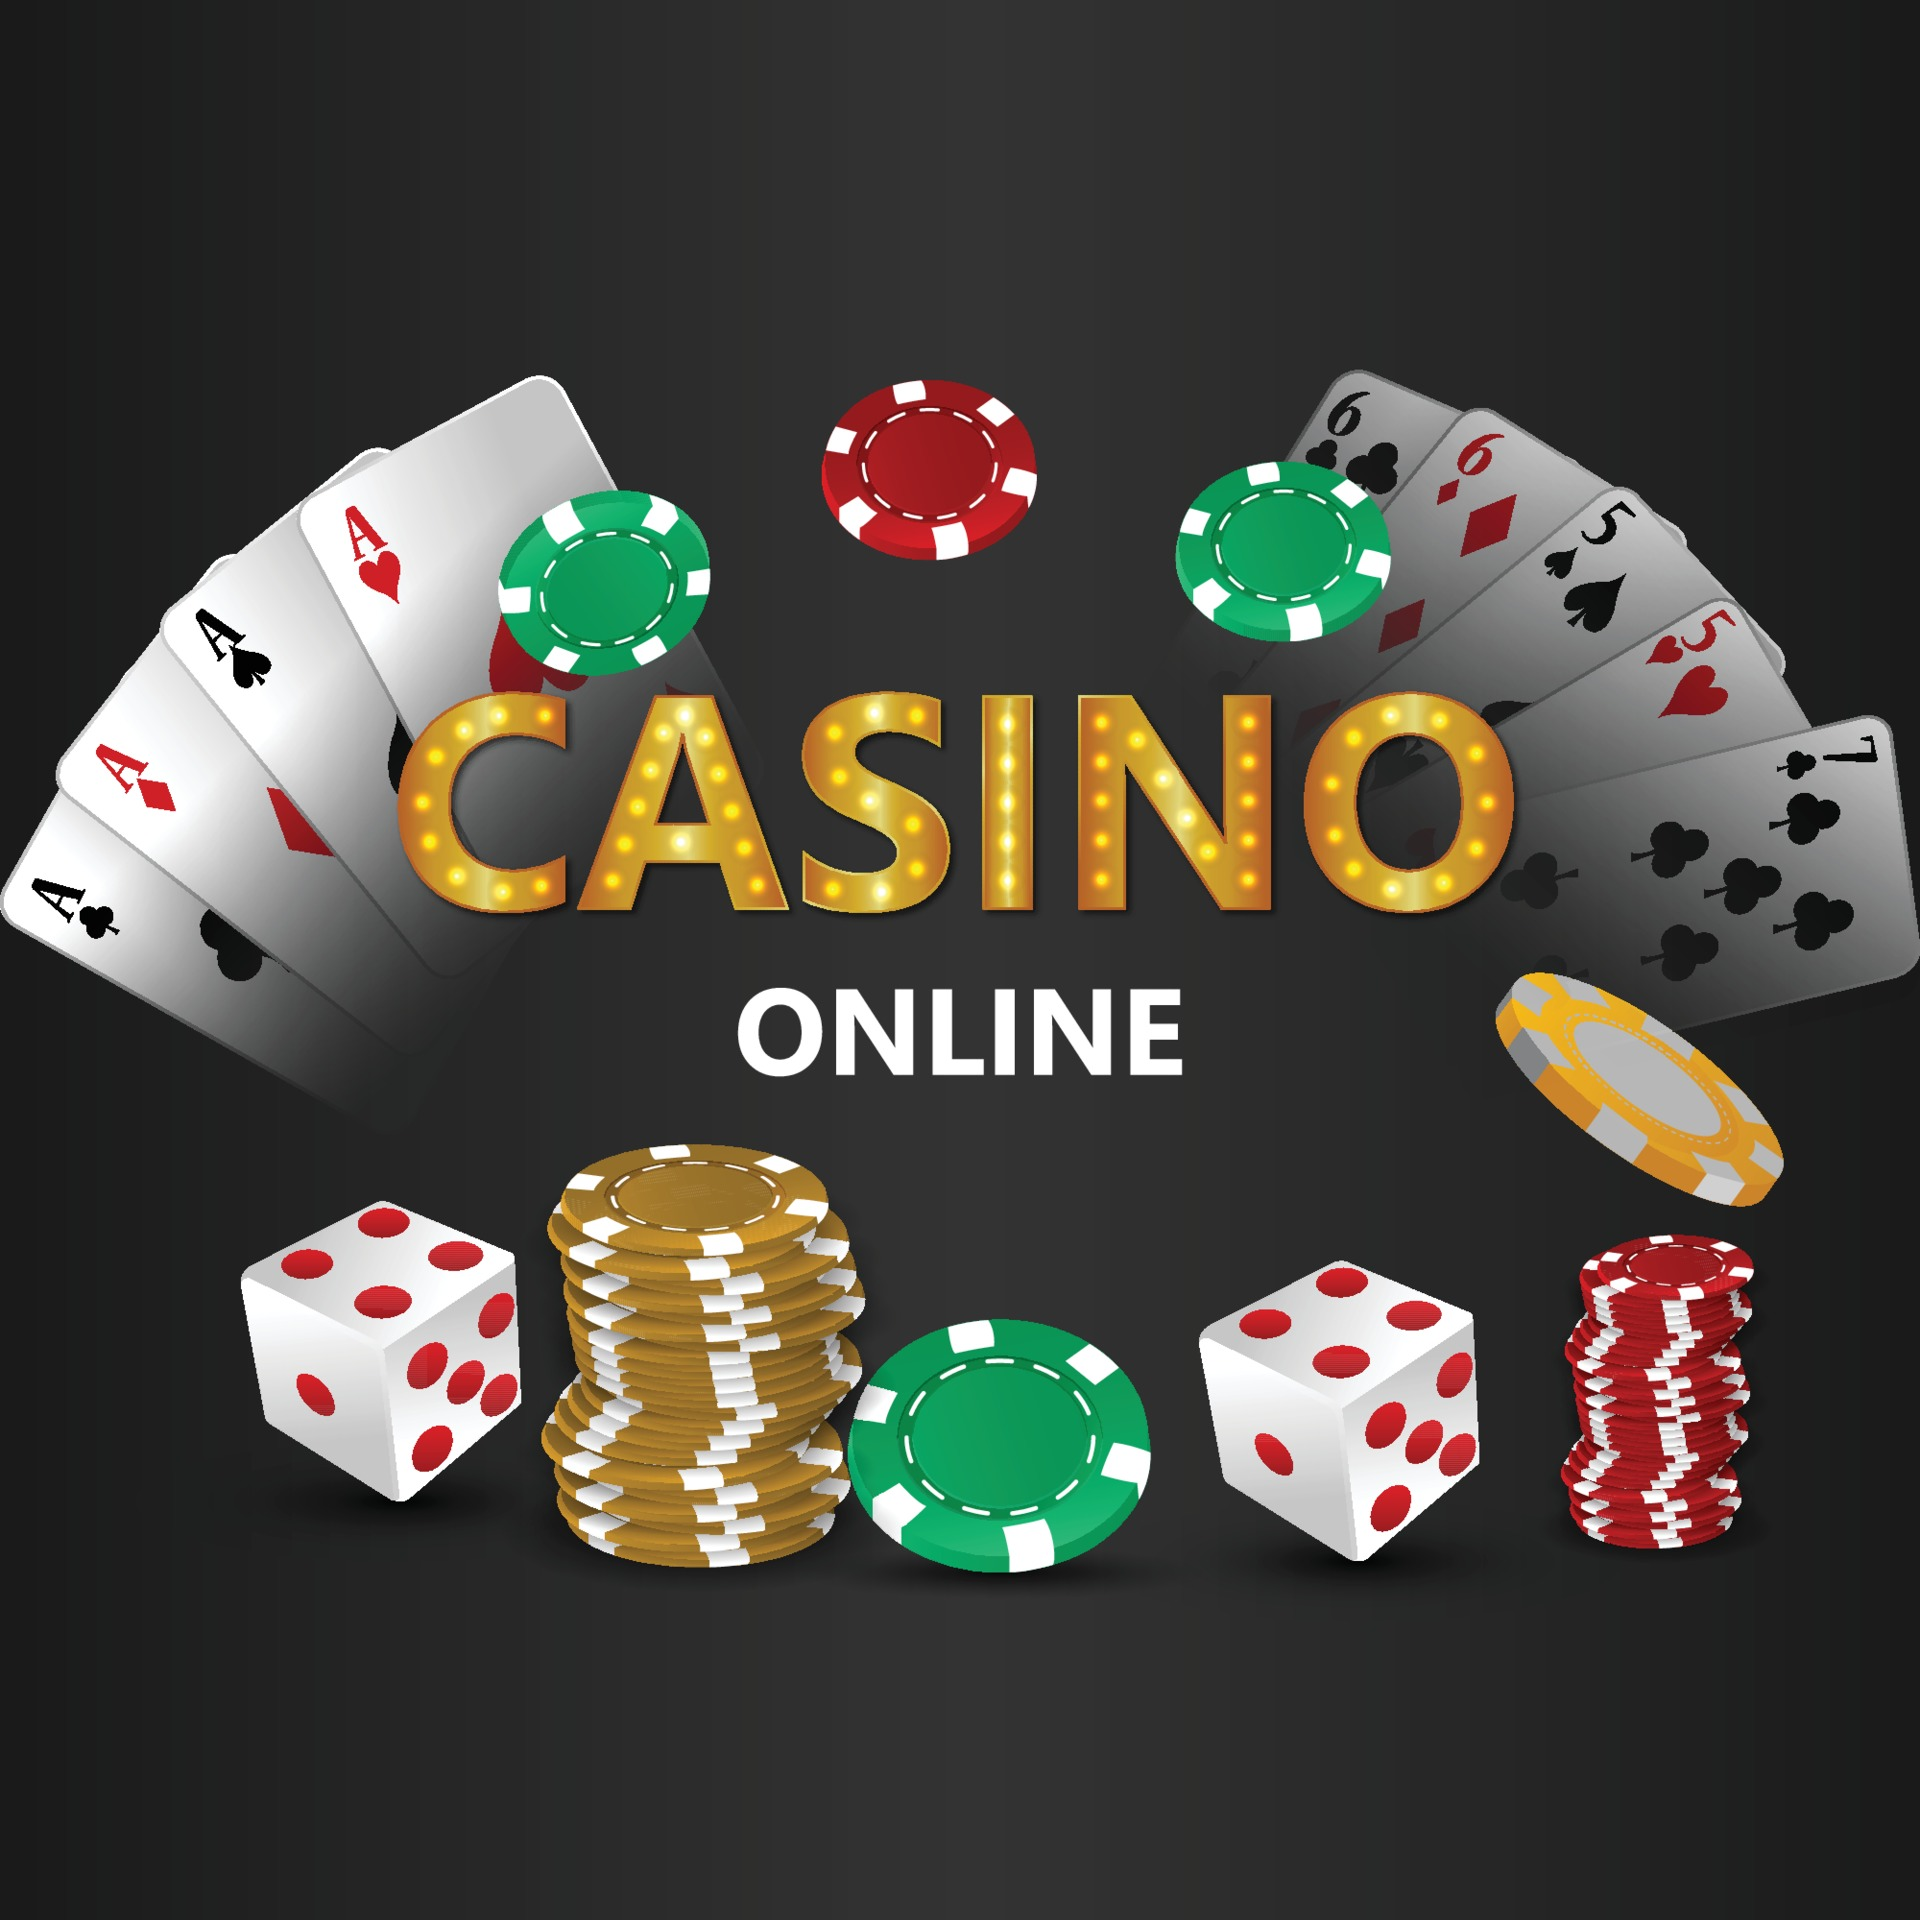 Casino online gambling game with playing card with poker dice and gold coin  2215210 - Download Free Vectors, Clipart Graphics & Vector Art